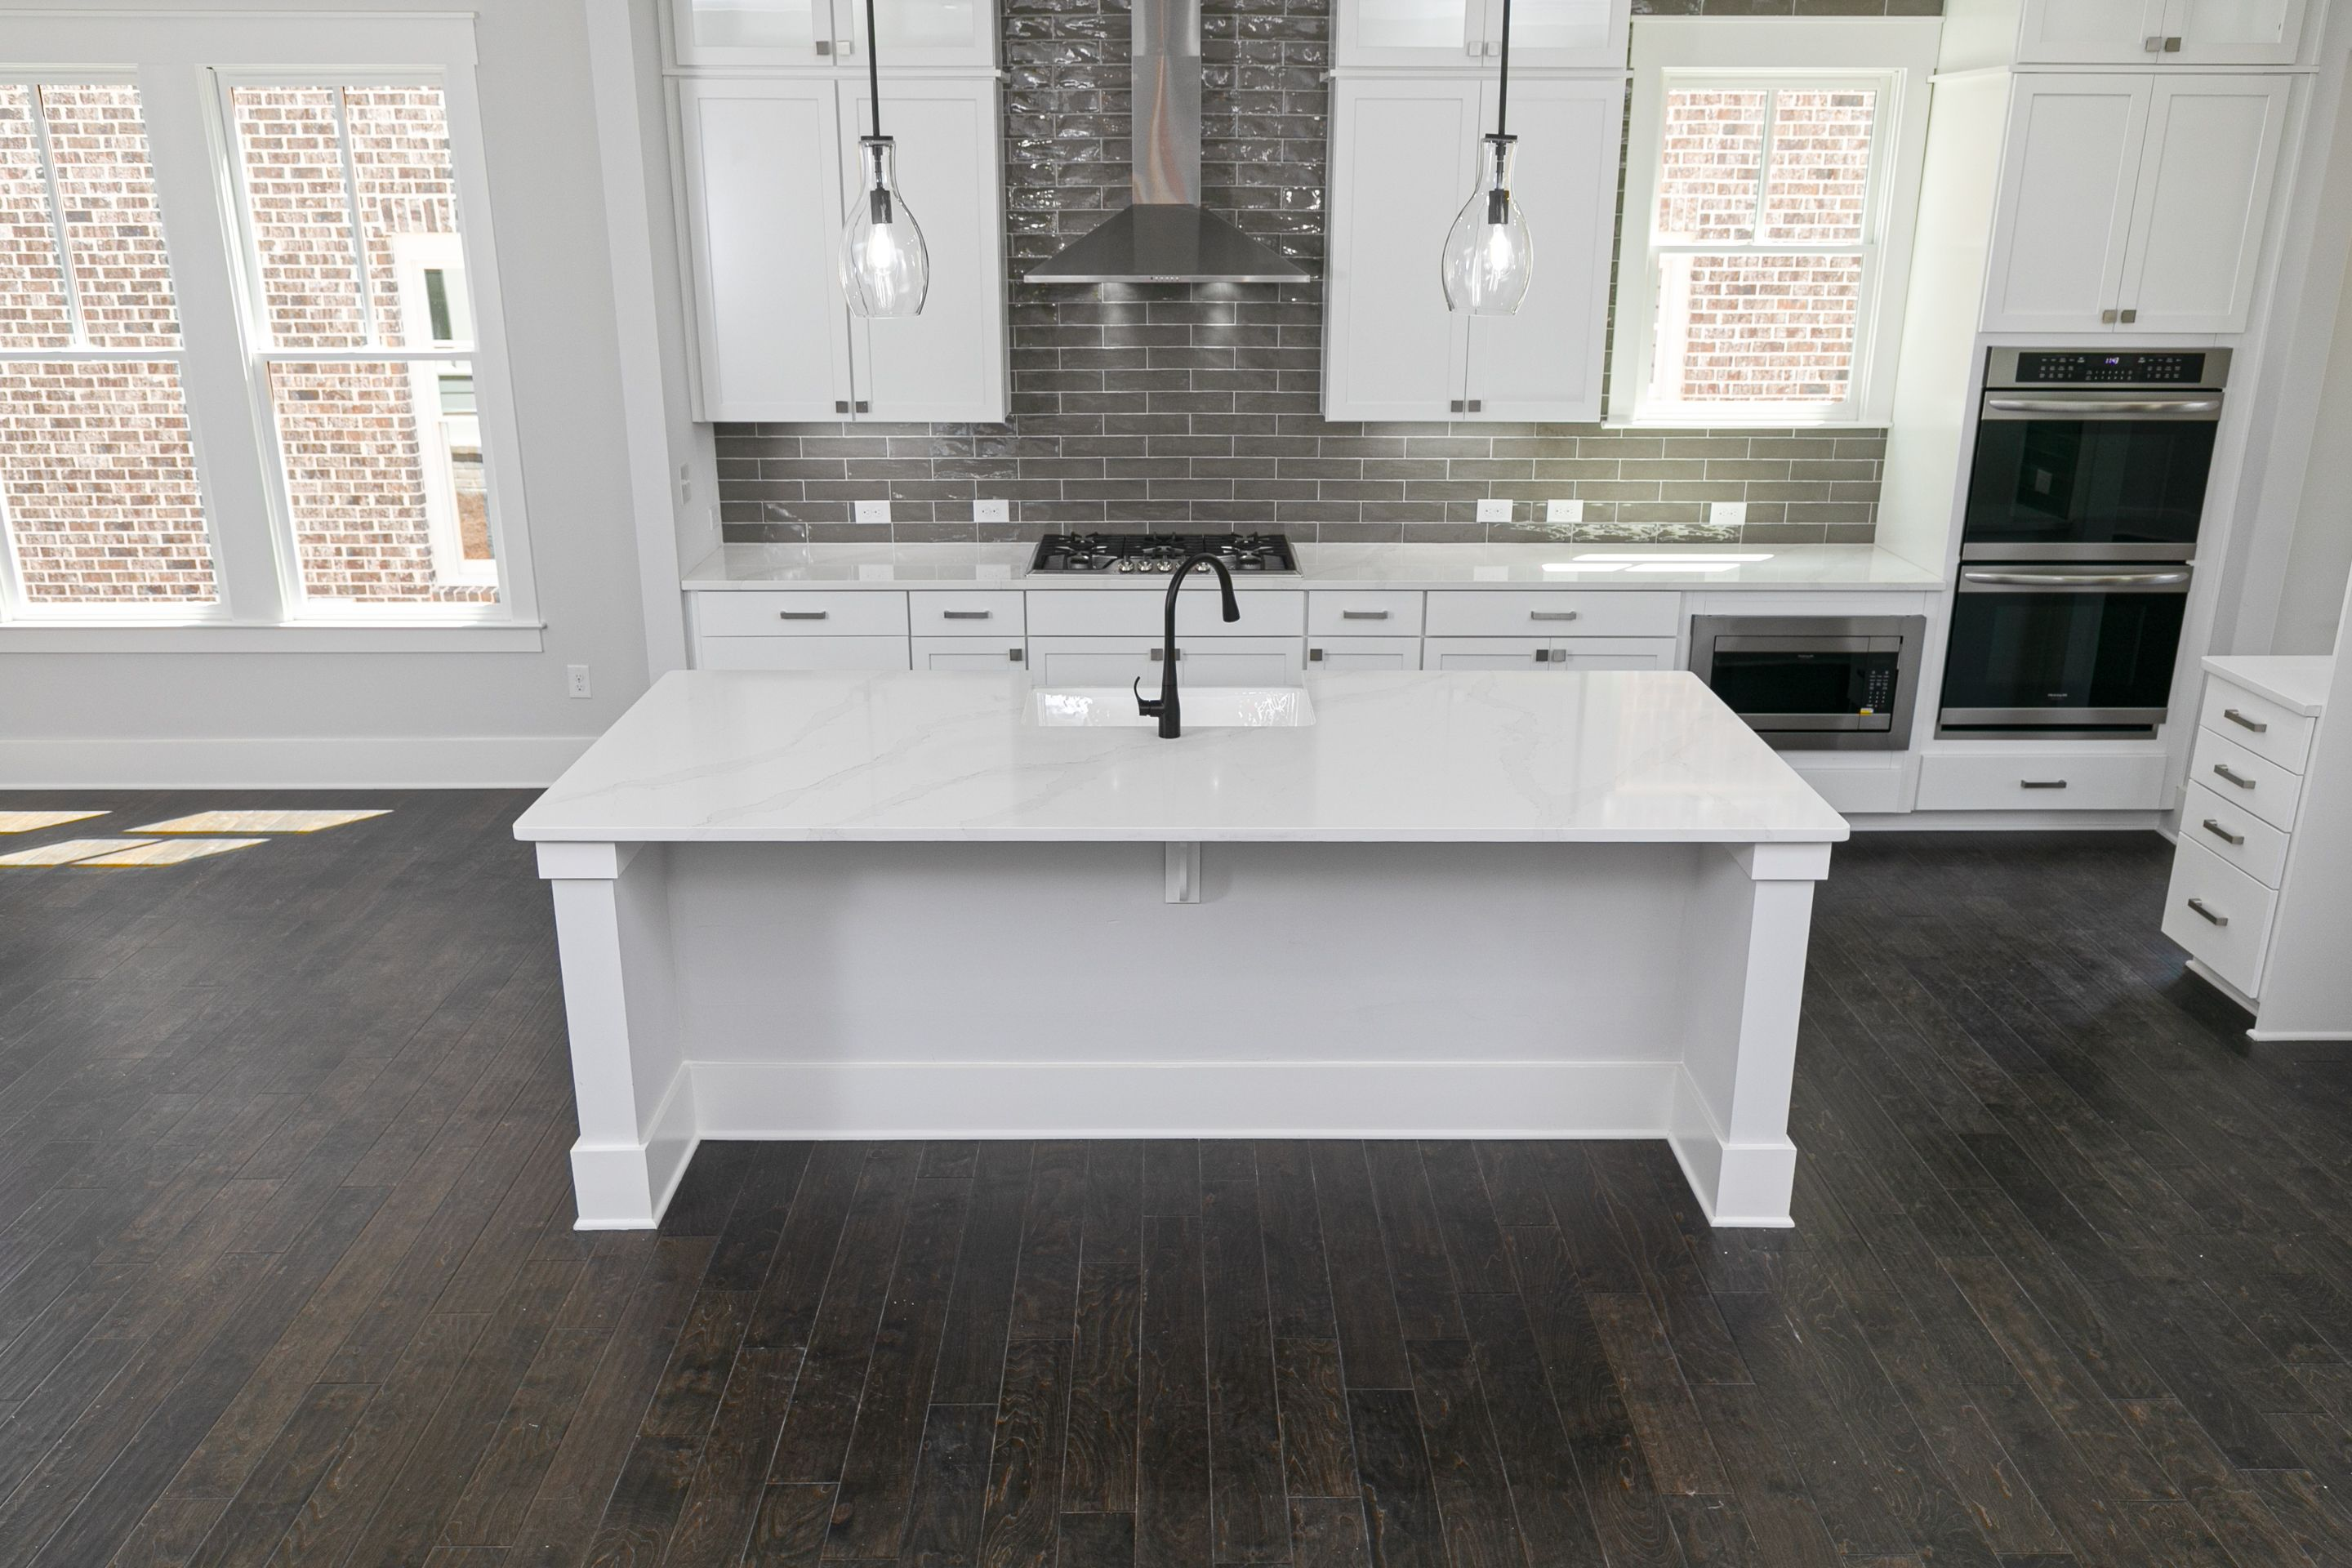 Kitchen featured in the Clementine By Stanley Martin Homes in Atlanta, GA